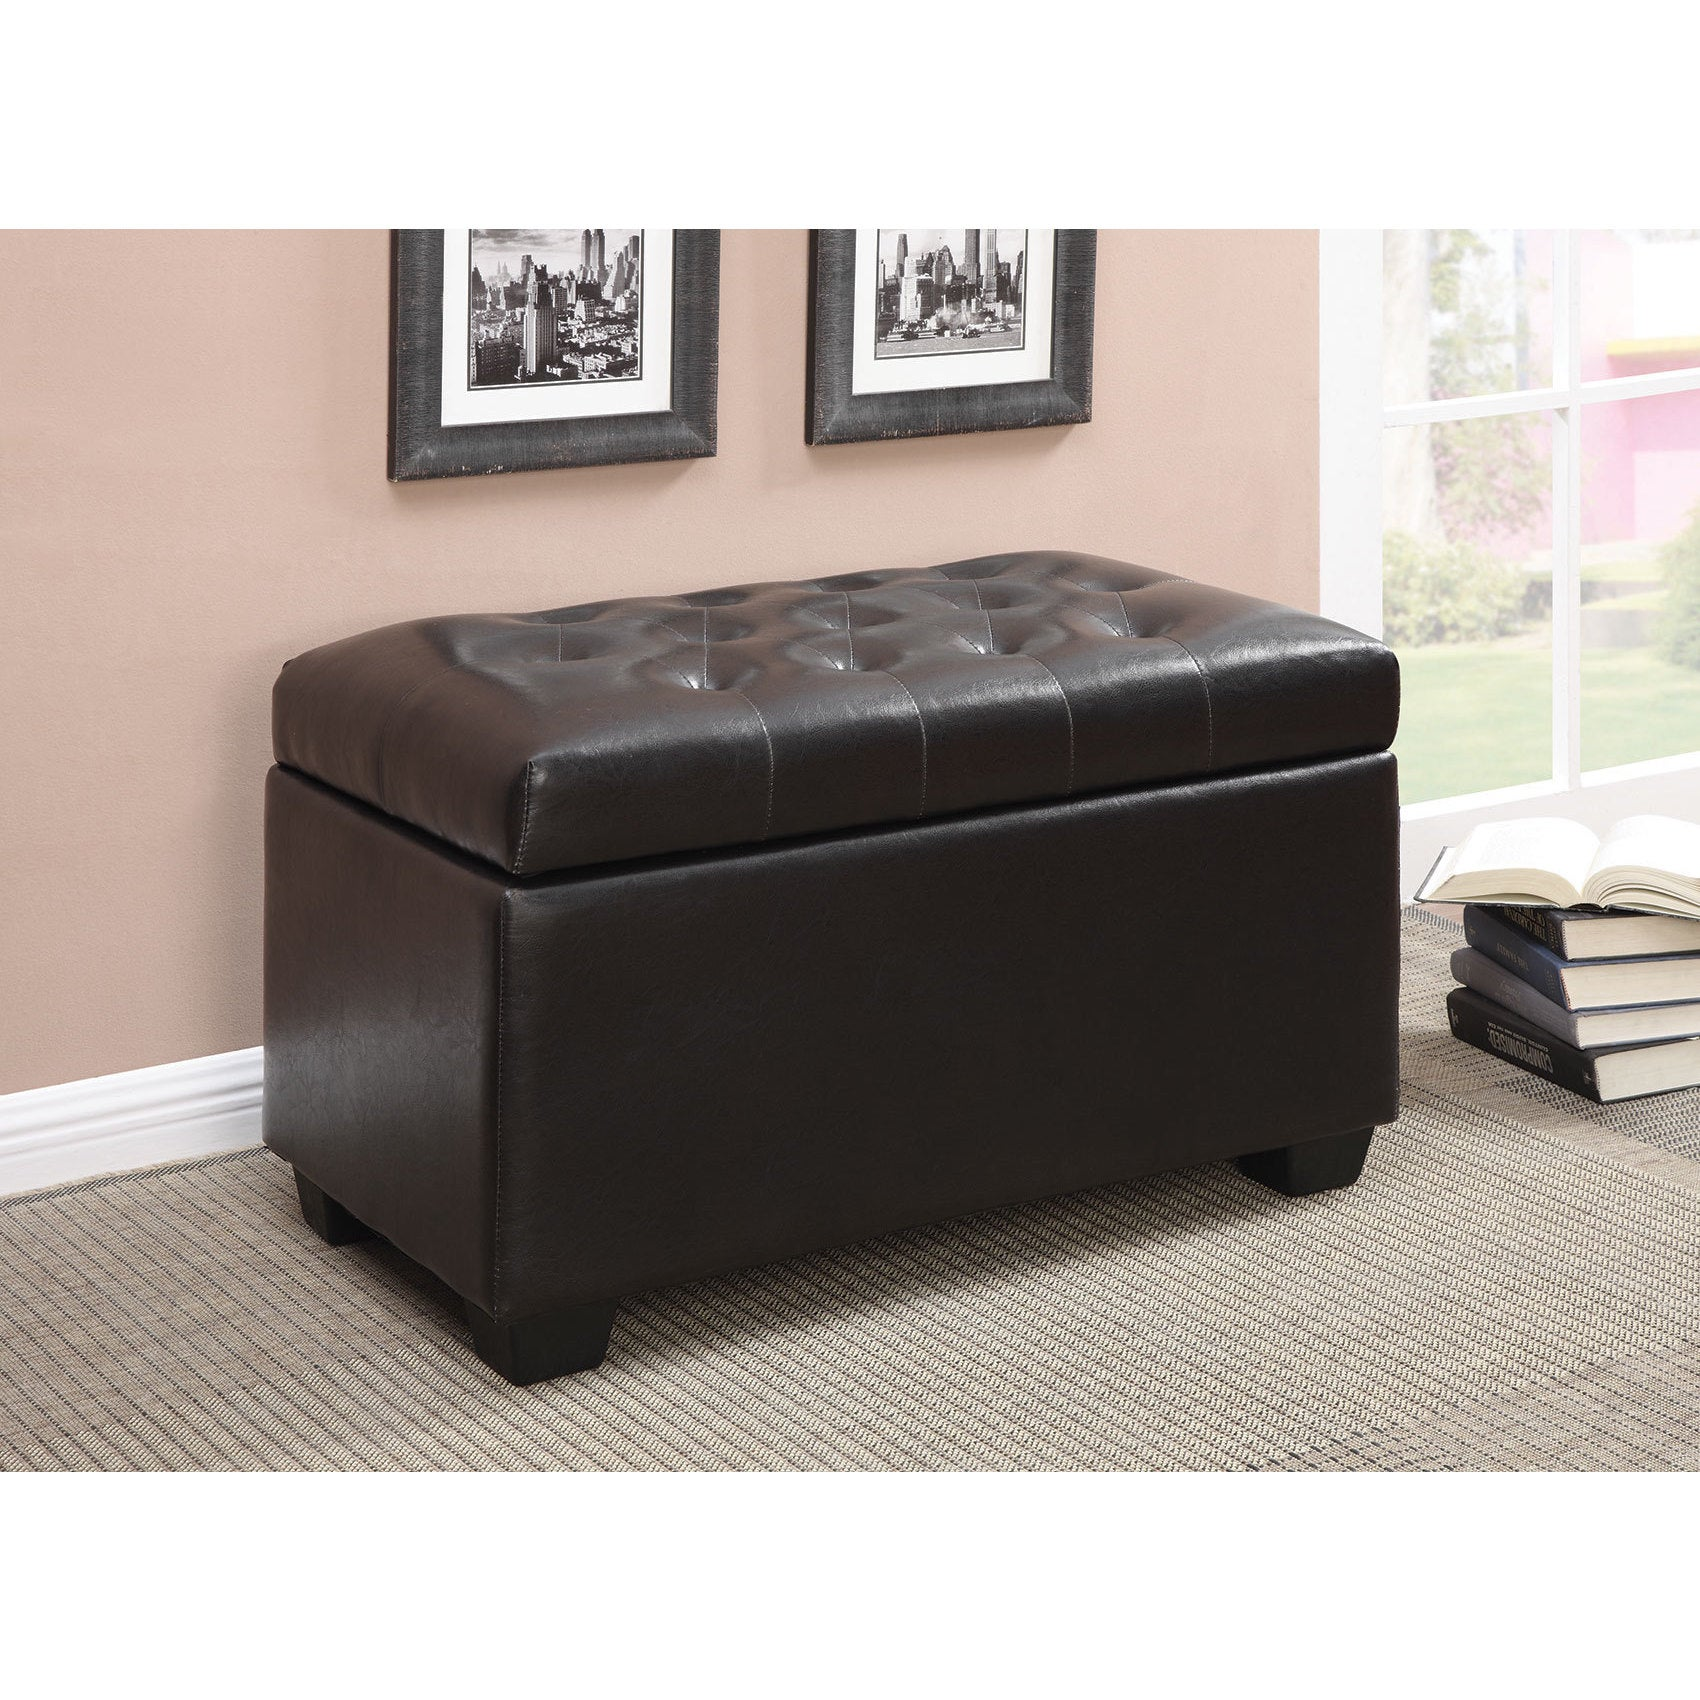 Peachy Details About Coaster Company Dark Brown Button Tufted Storage Ottoman Black Large Ibusinesslaw Wood Chair Design Ideas Ibusinesslaworg